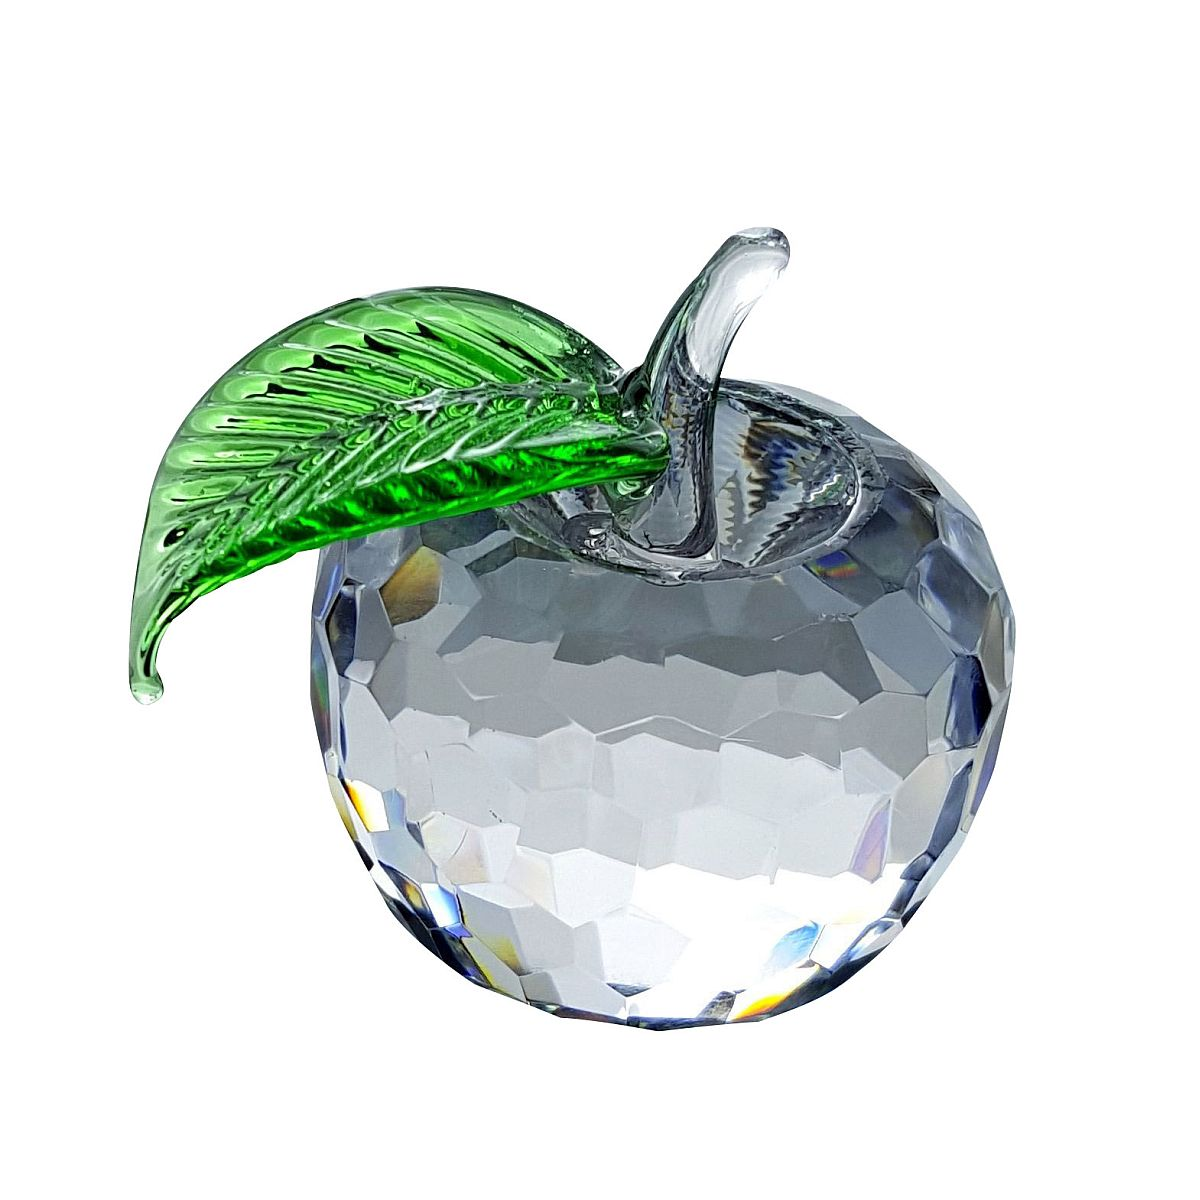 Crystal Medium Apple Figurine with Green Leaf